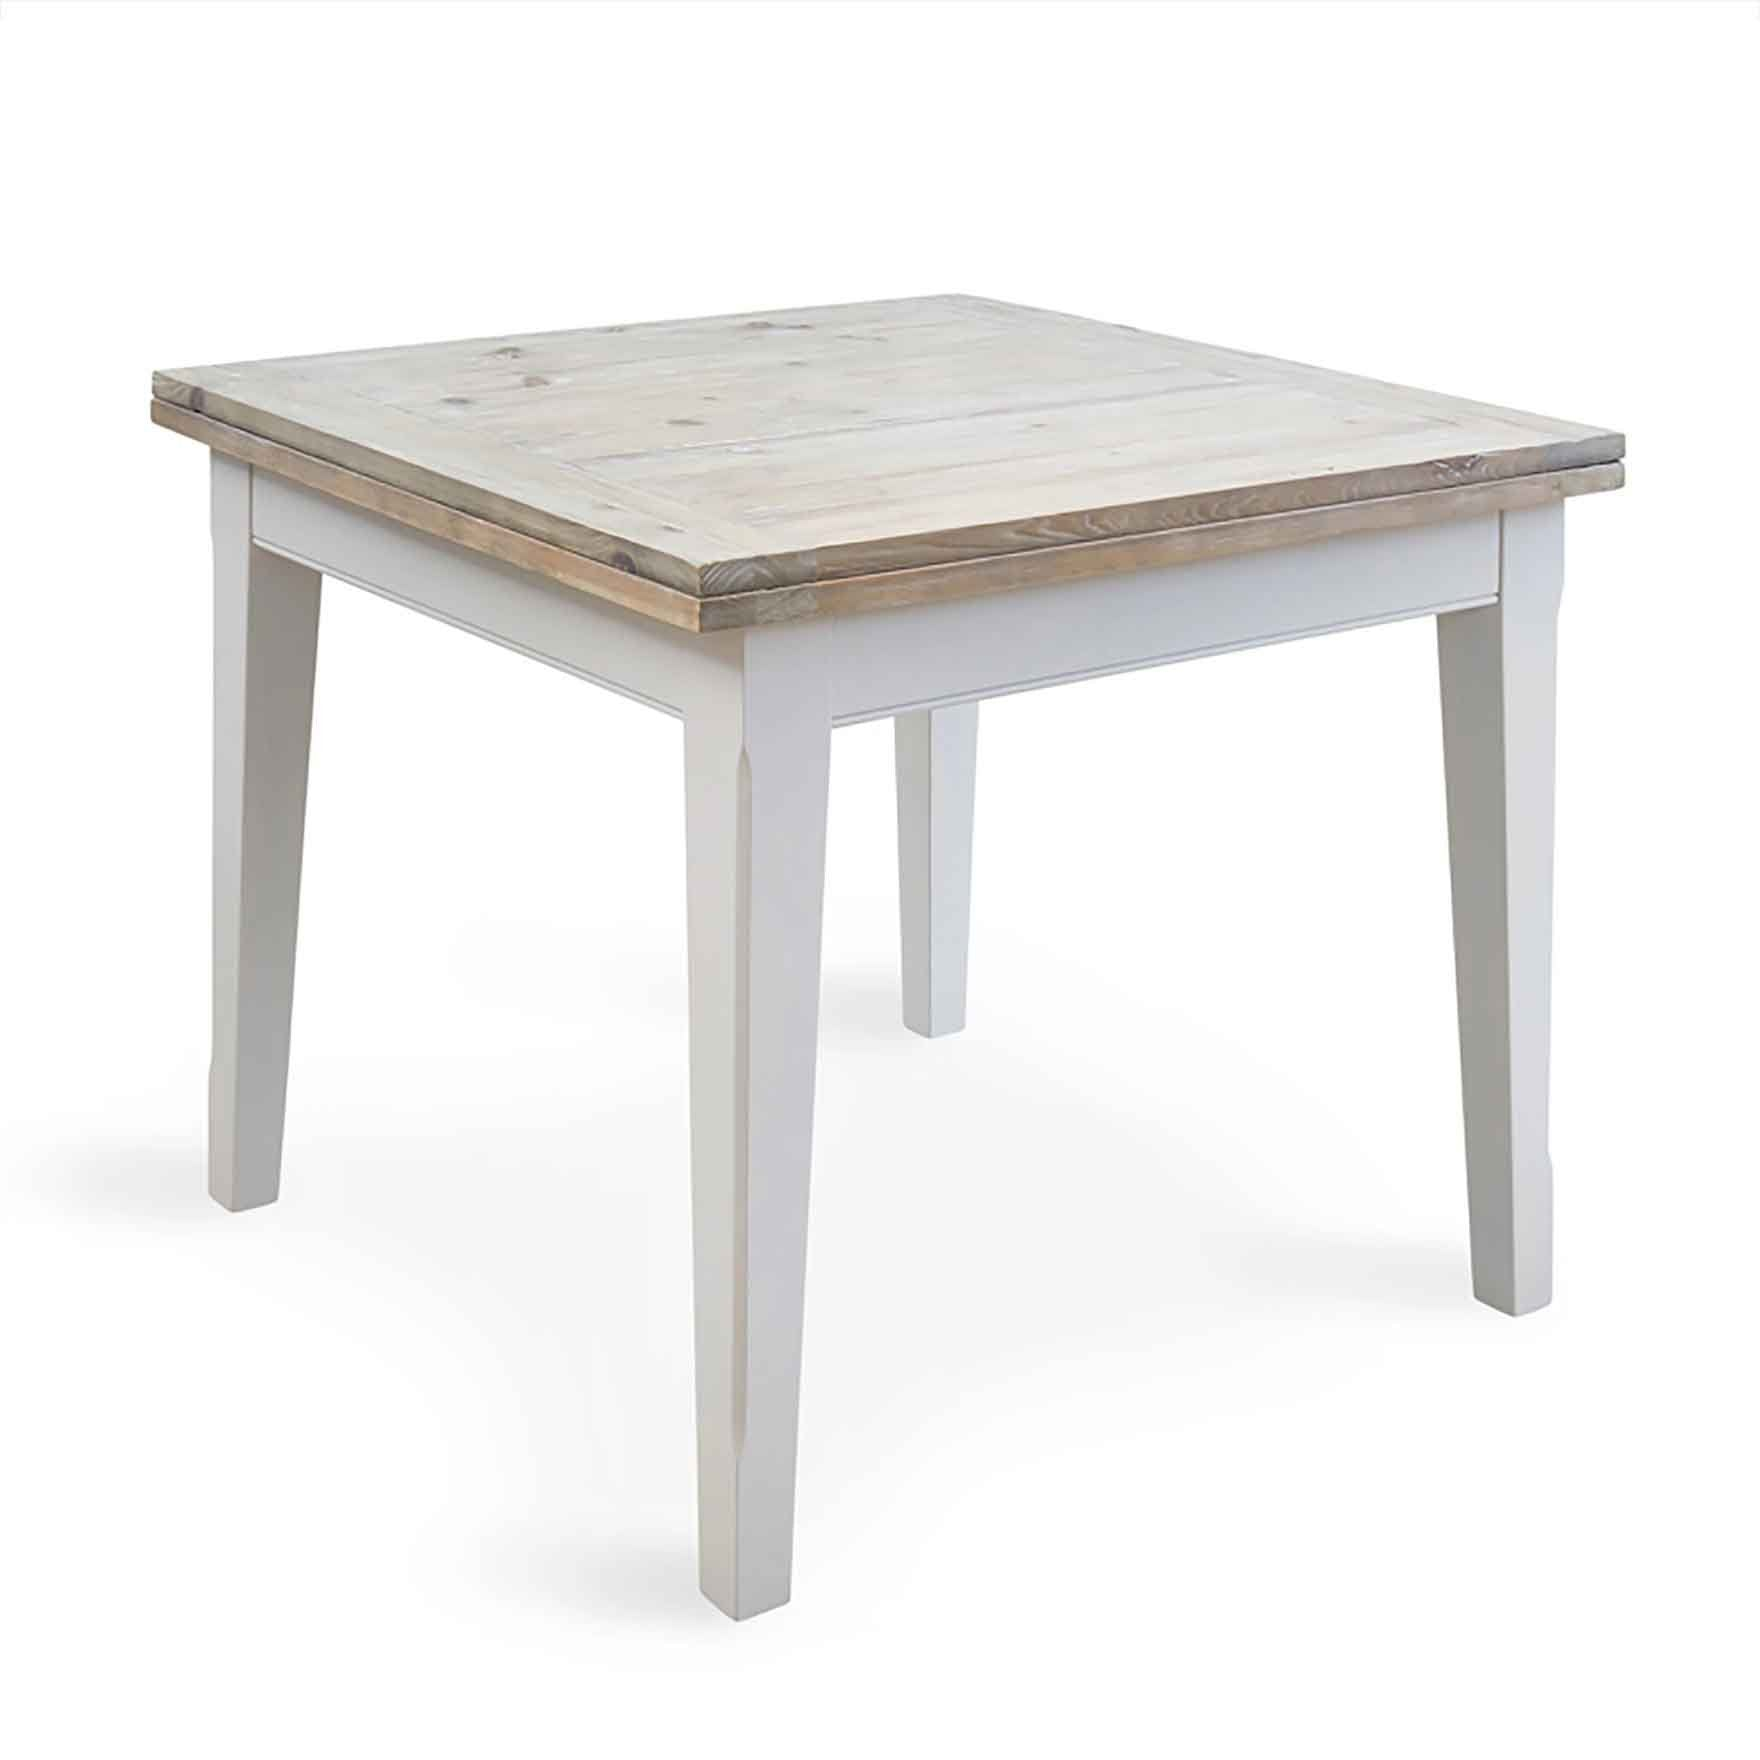 Signature Grey 95-190cm Square Extending Dining Table by Roseland Furniture